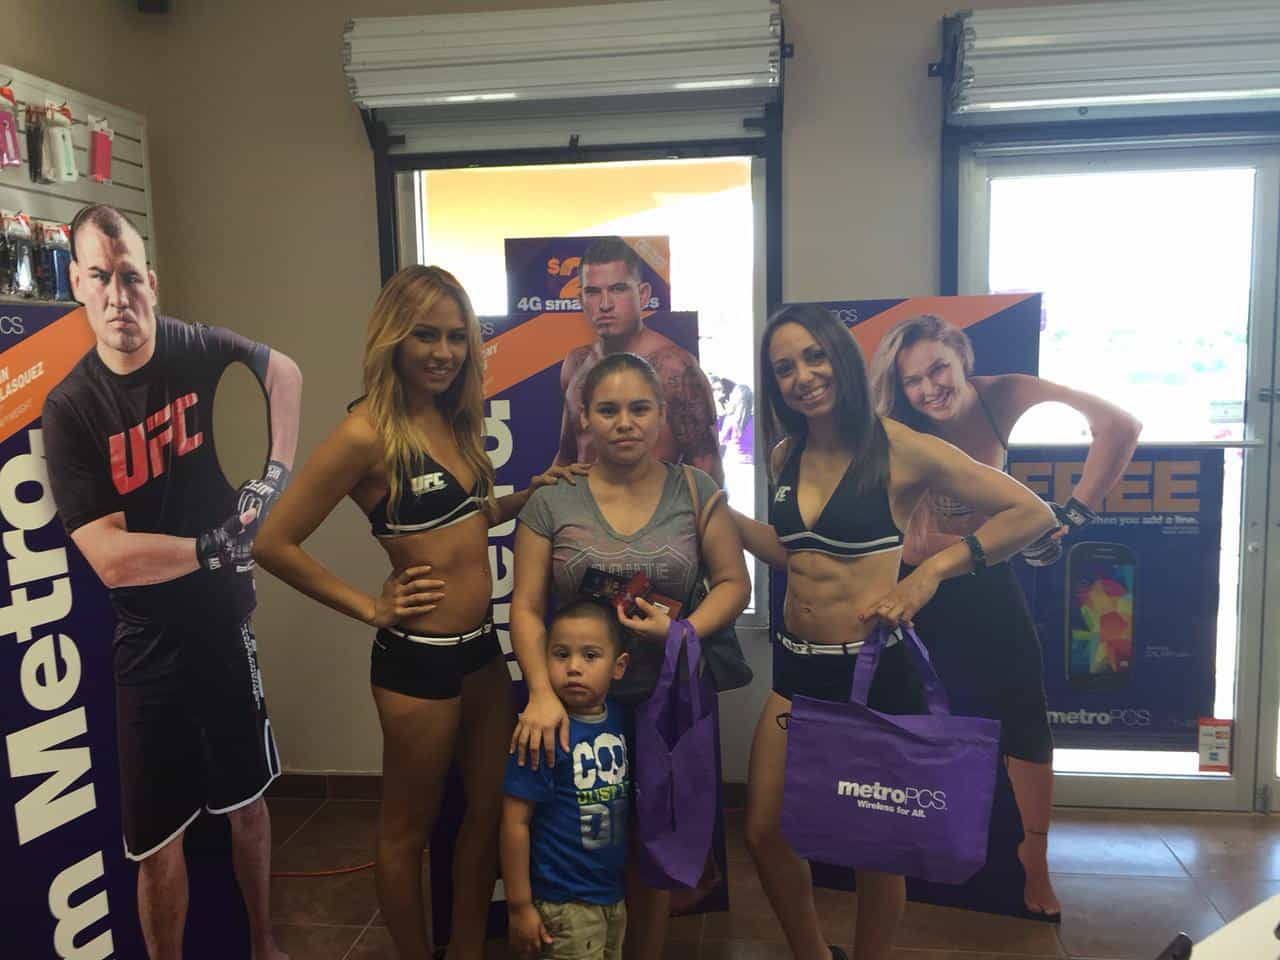 Metro PCS & 107.9 Mix FM getting ready for UFC 187 at Tilted Kilt